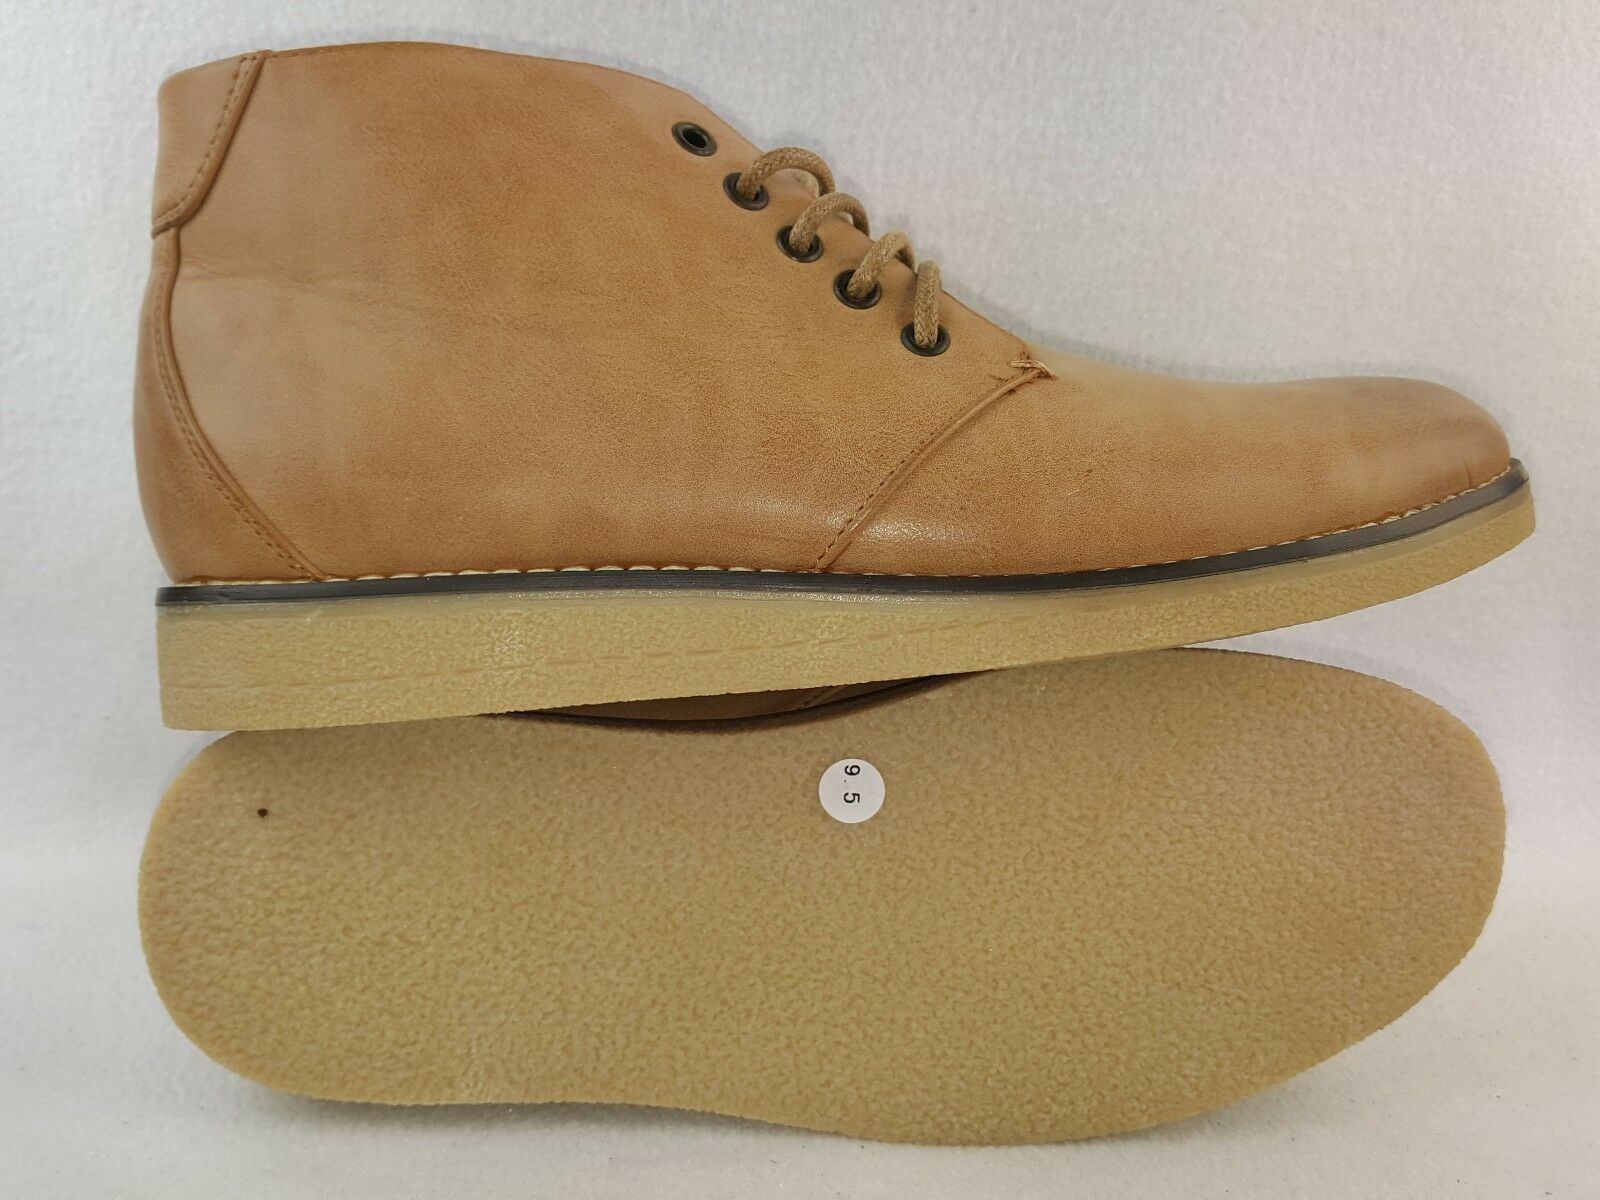 M Bredher  505  Men's Comfort Casual Ankle Boots, Camel Size 9.5